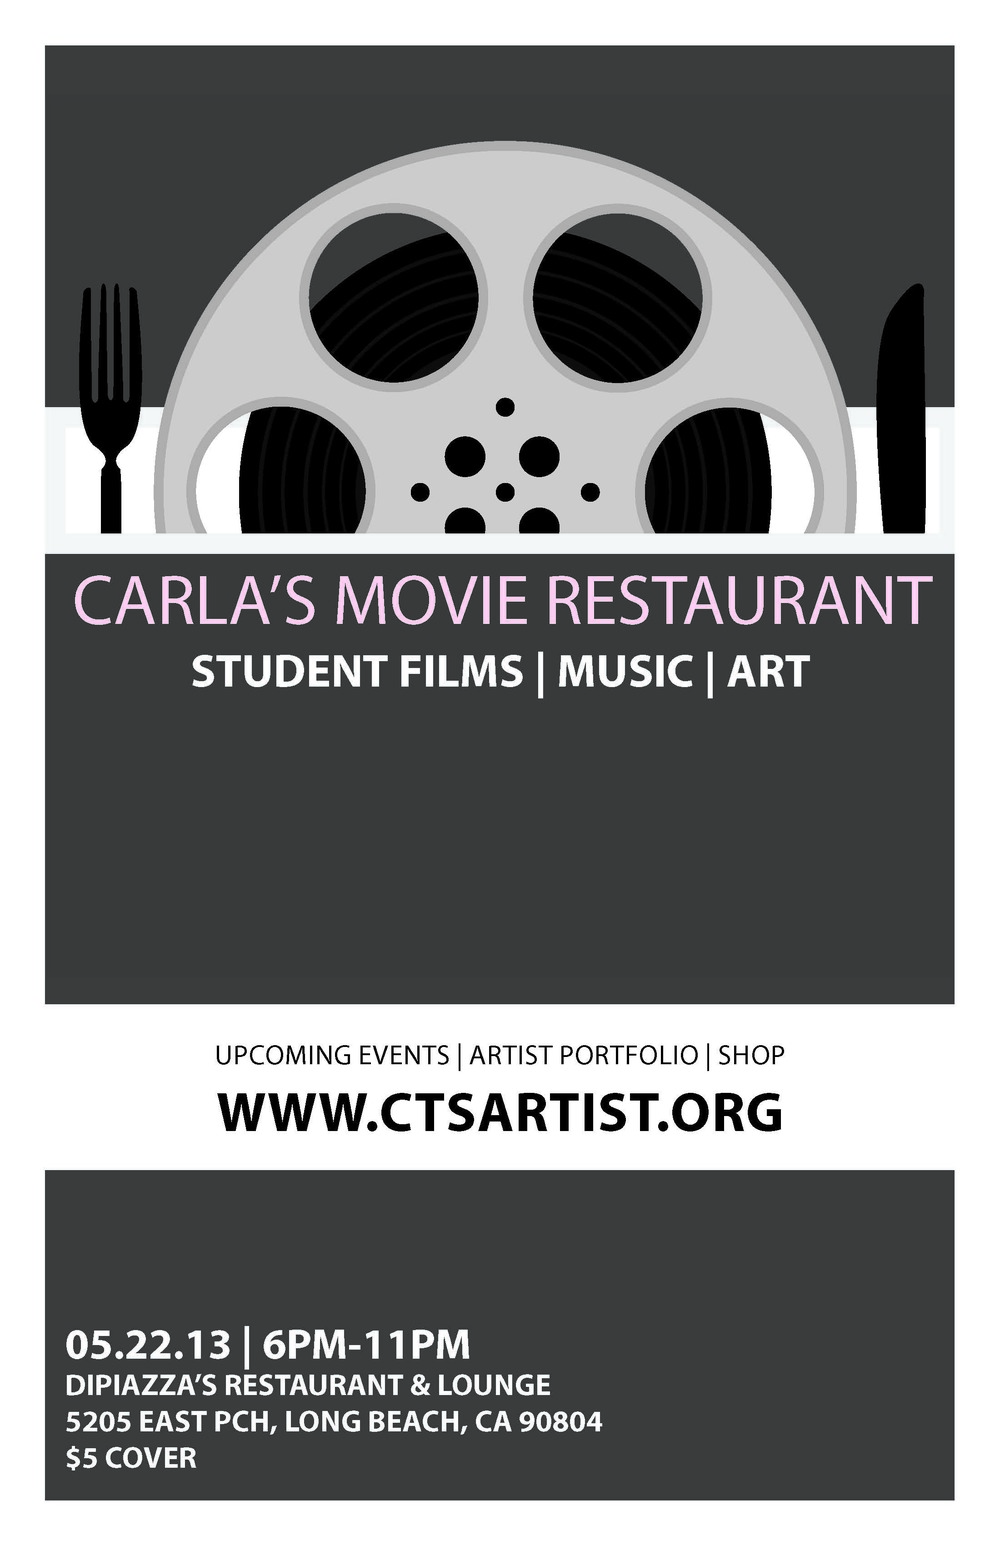 Upcoming date for Carla's Movie Restaurant is 05/22/2013